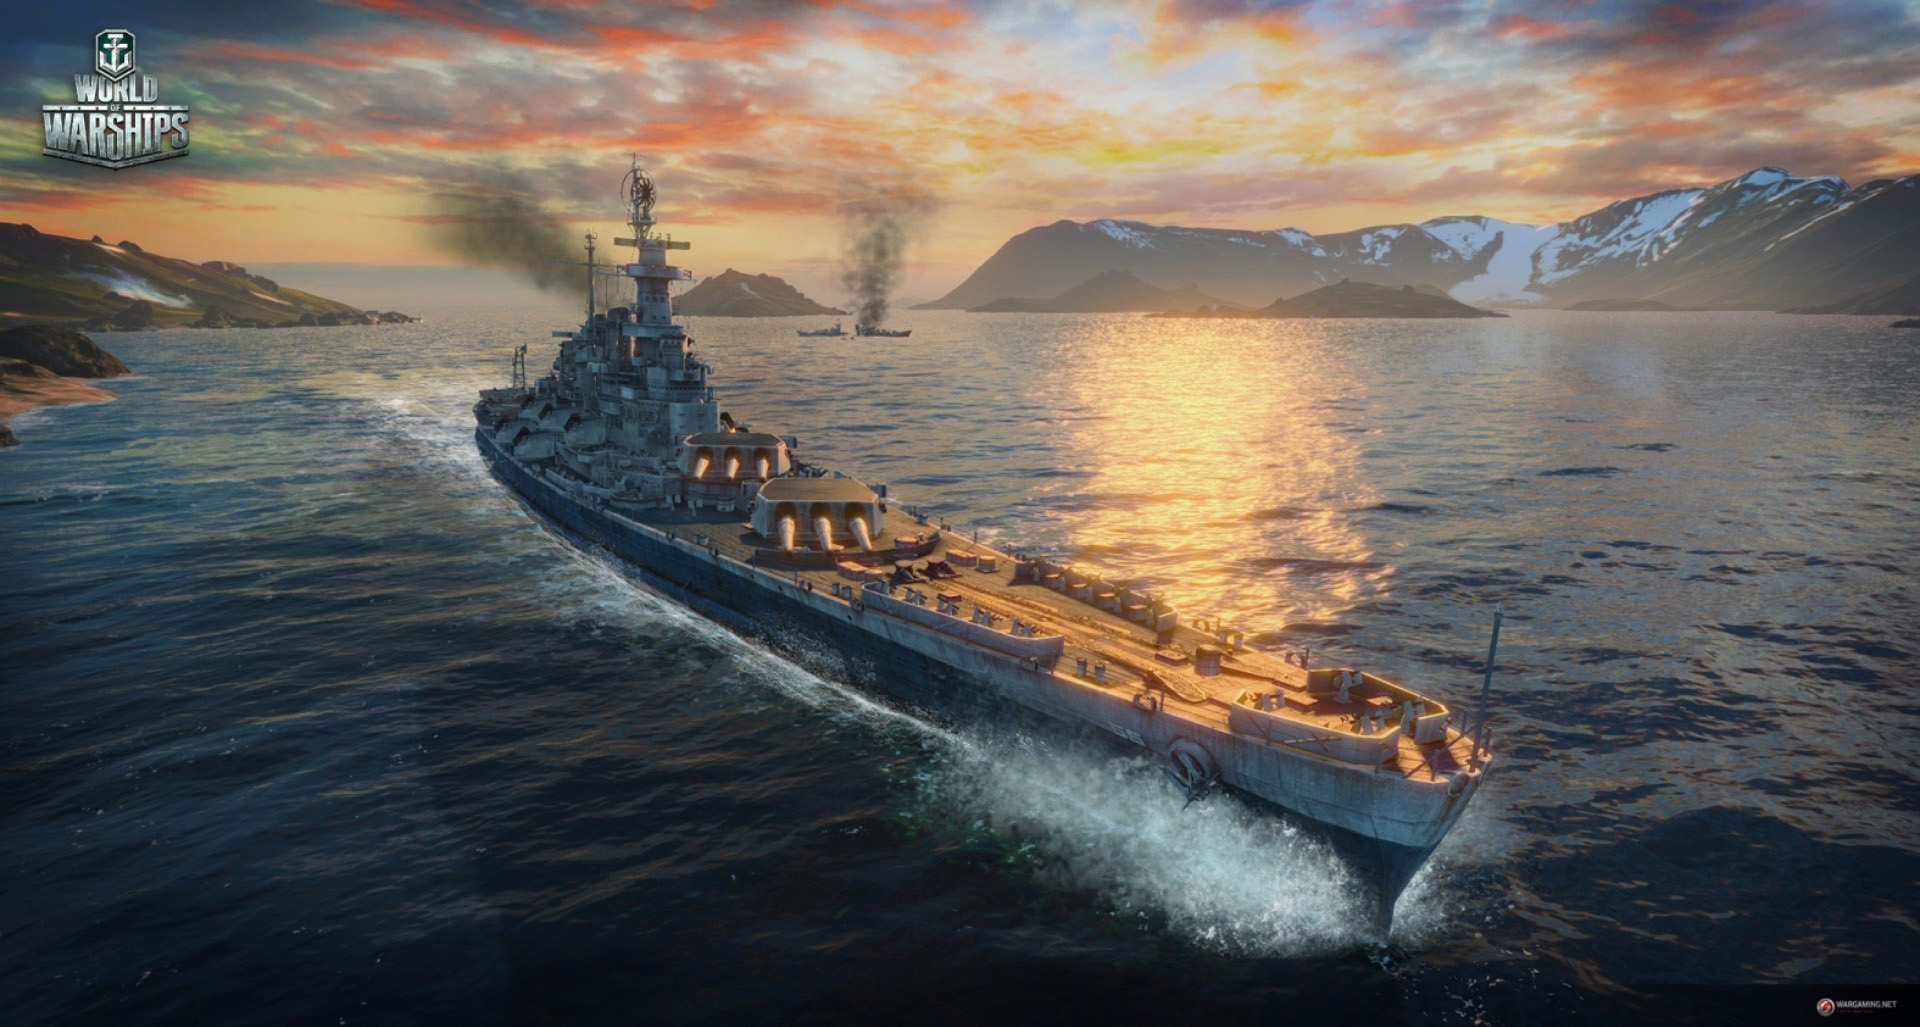 world of warships download slow